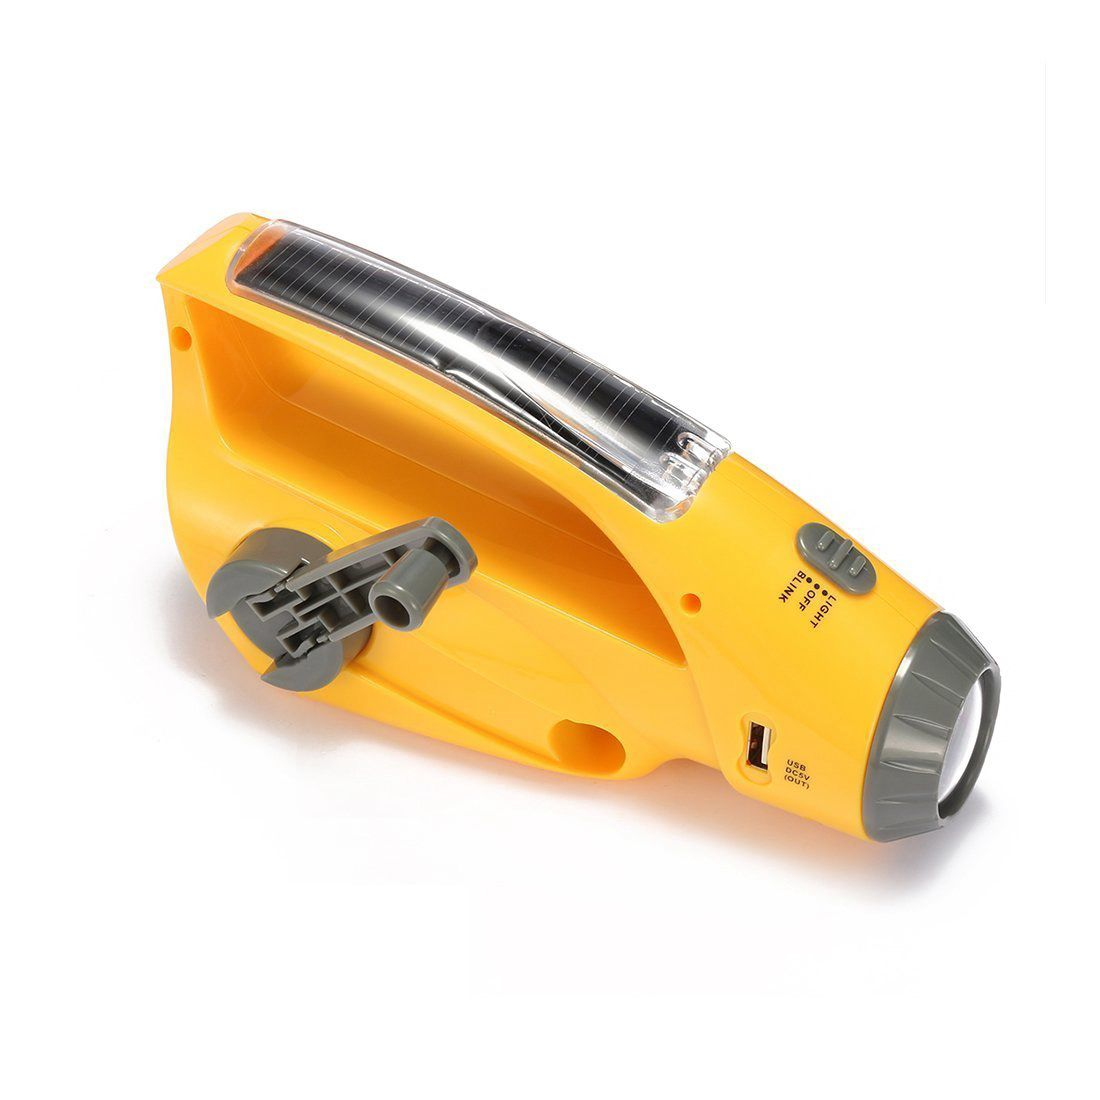 Crank Dynamo Radio XLN-288DUS Crank Dynamo AM/FM Radio with Flashlight Hand Cranking Rechargeable Emergency Flashlights Torch emergency power hand crank dynamo 5 led flashlight with am fm radio for camping